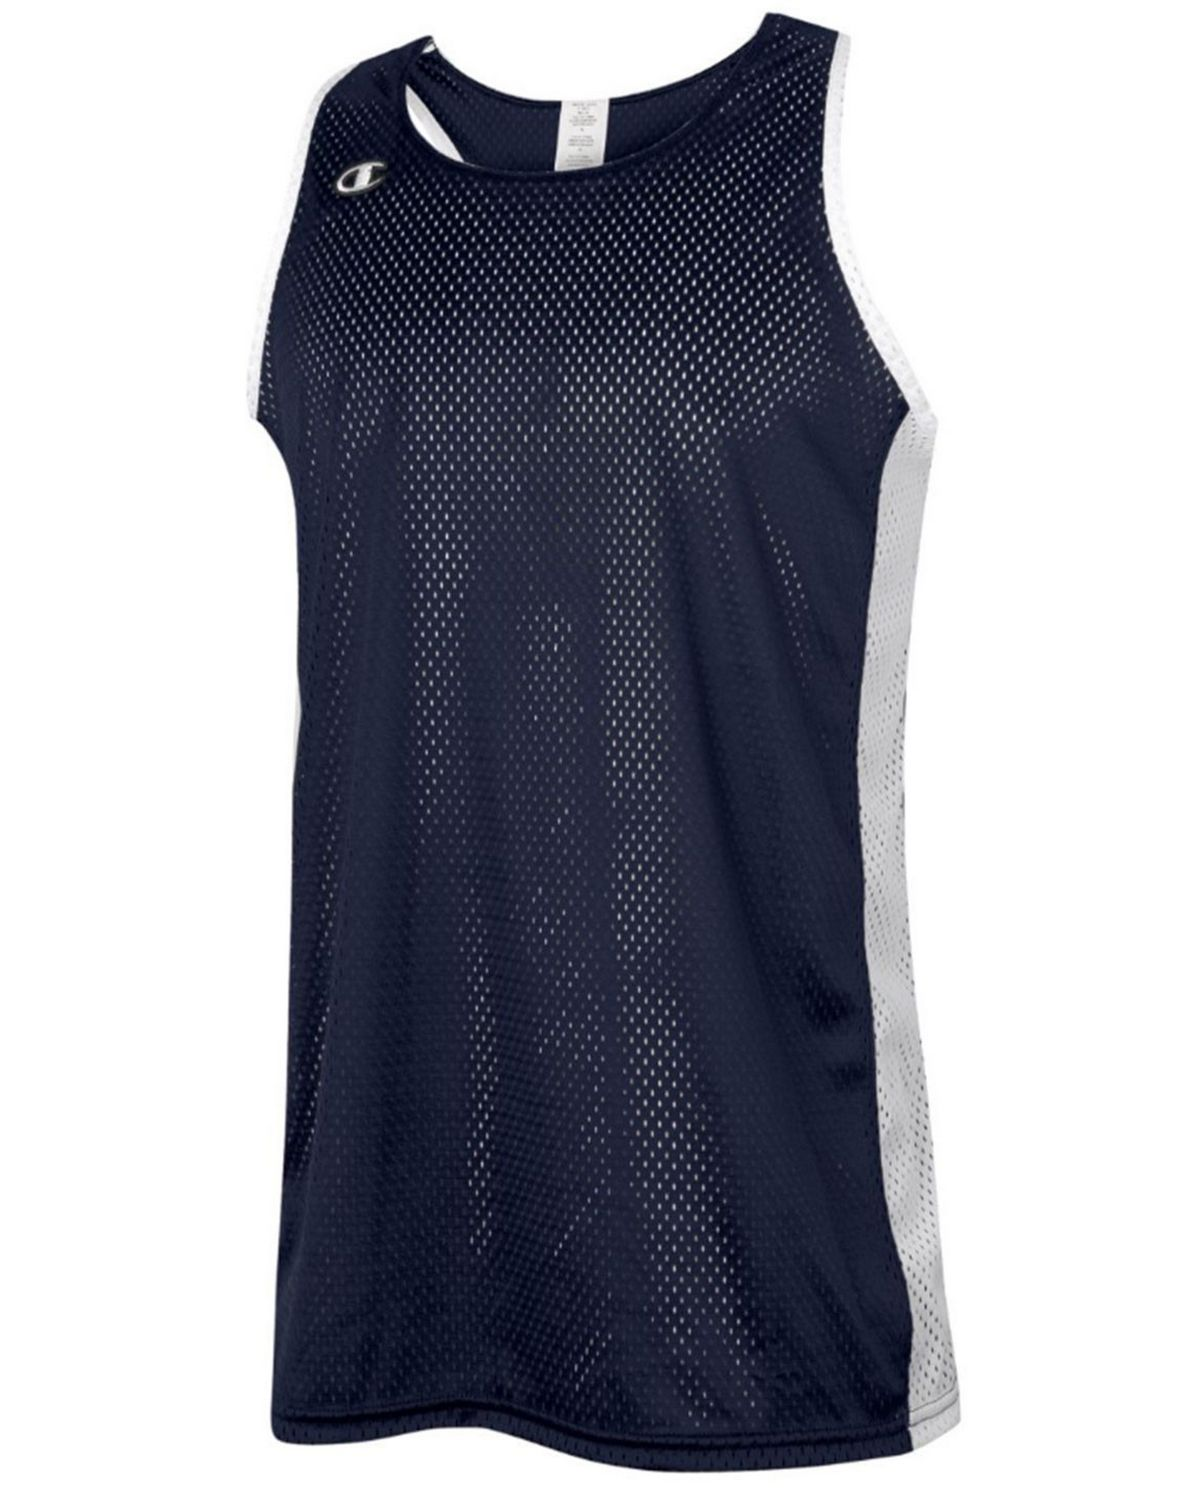 Champion B003 Womens Bb Tank - Navy/White - XS B003